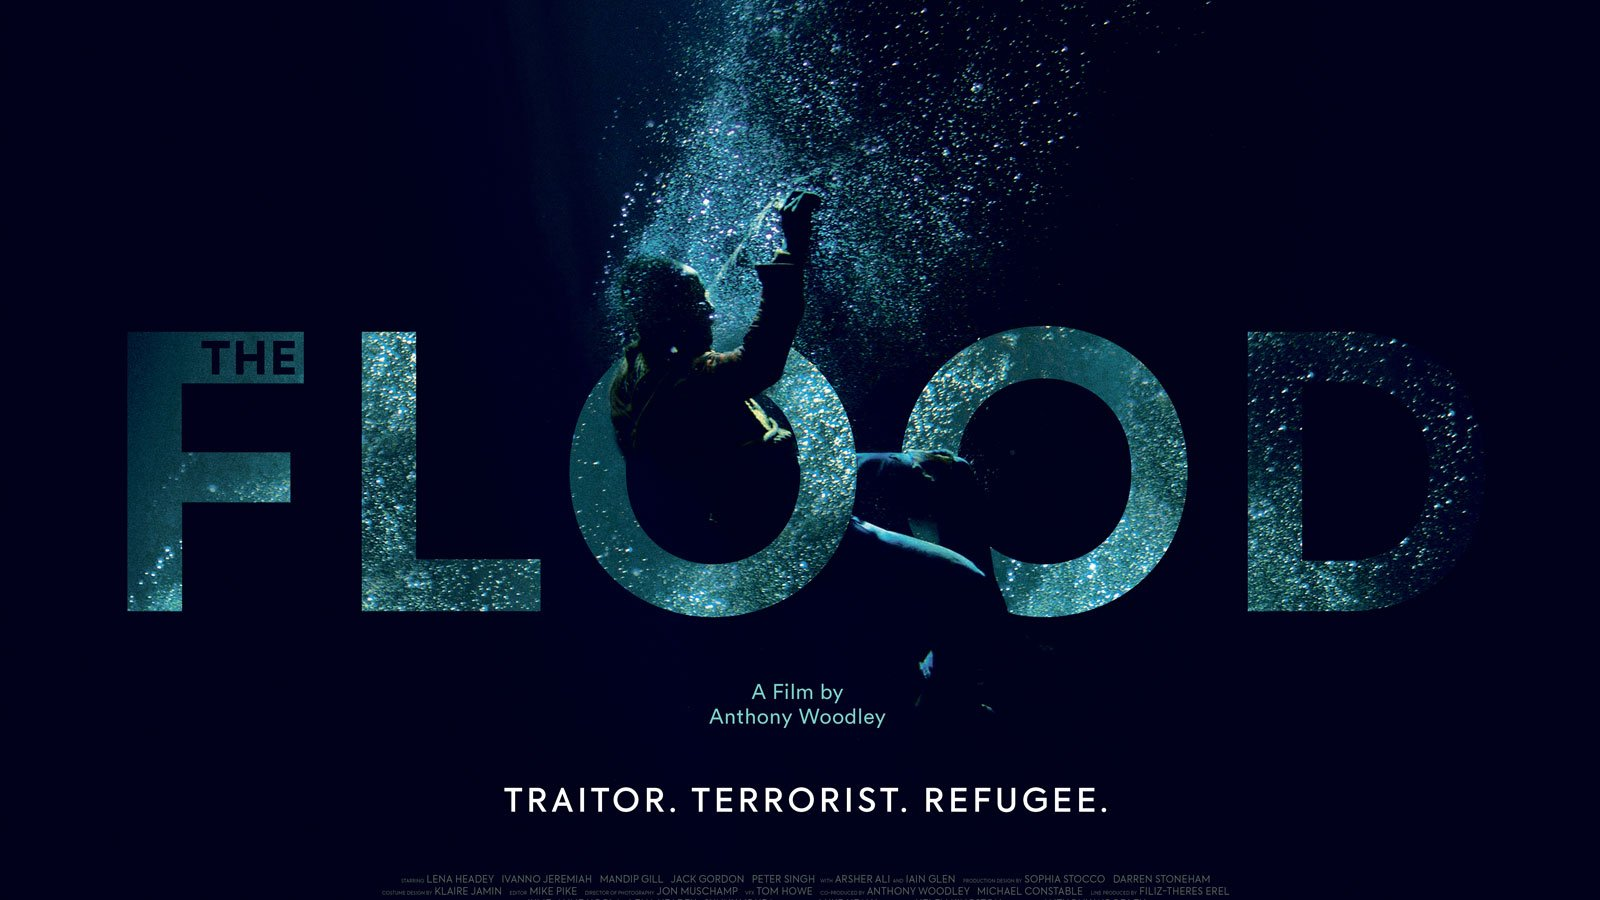 The Flood Trailer & Poster - OC Movie Reviews - Movie Reviews, Movie News, Documentary Reviews, Short Films, Short Film Reviews, Trailers, Movie Trailers, Interviews, film reviews, film news, hollywood, indie films, documentaries, TV shows